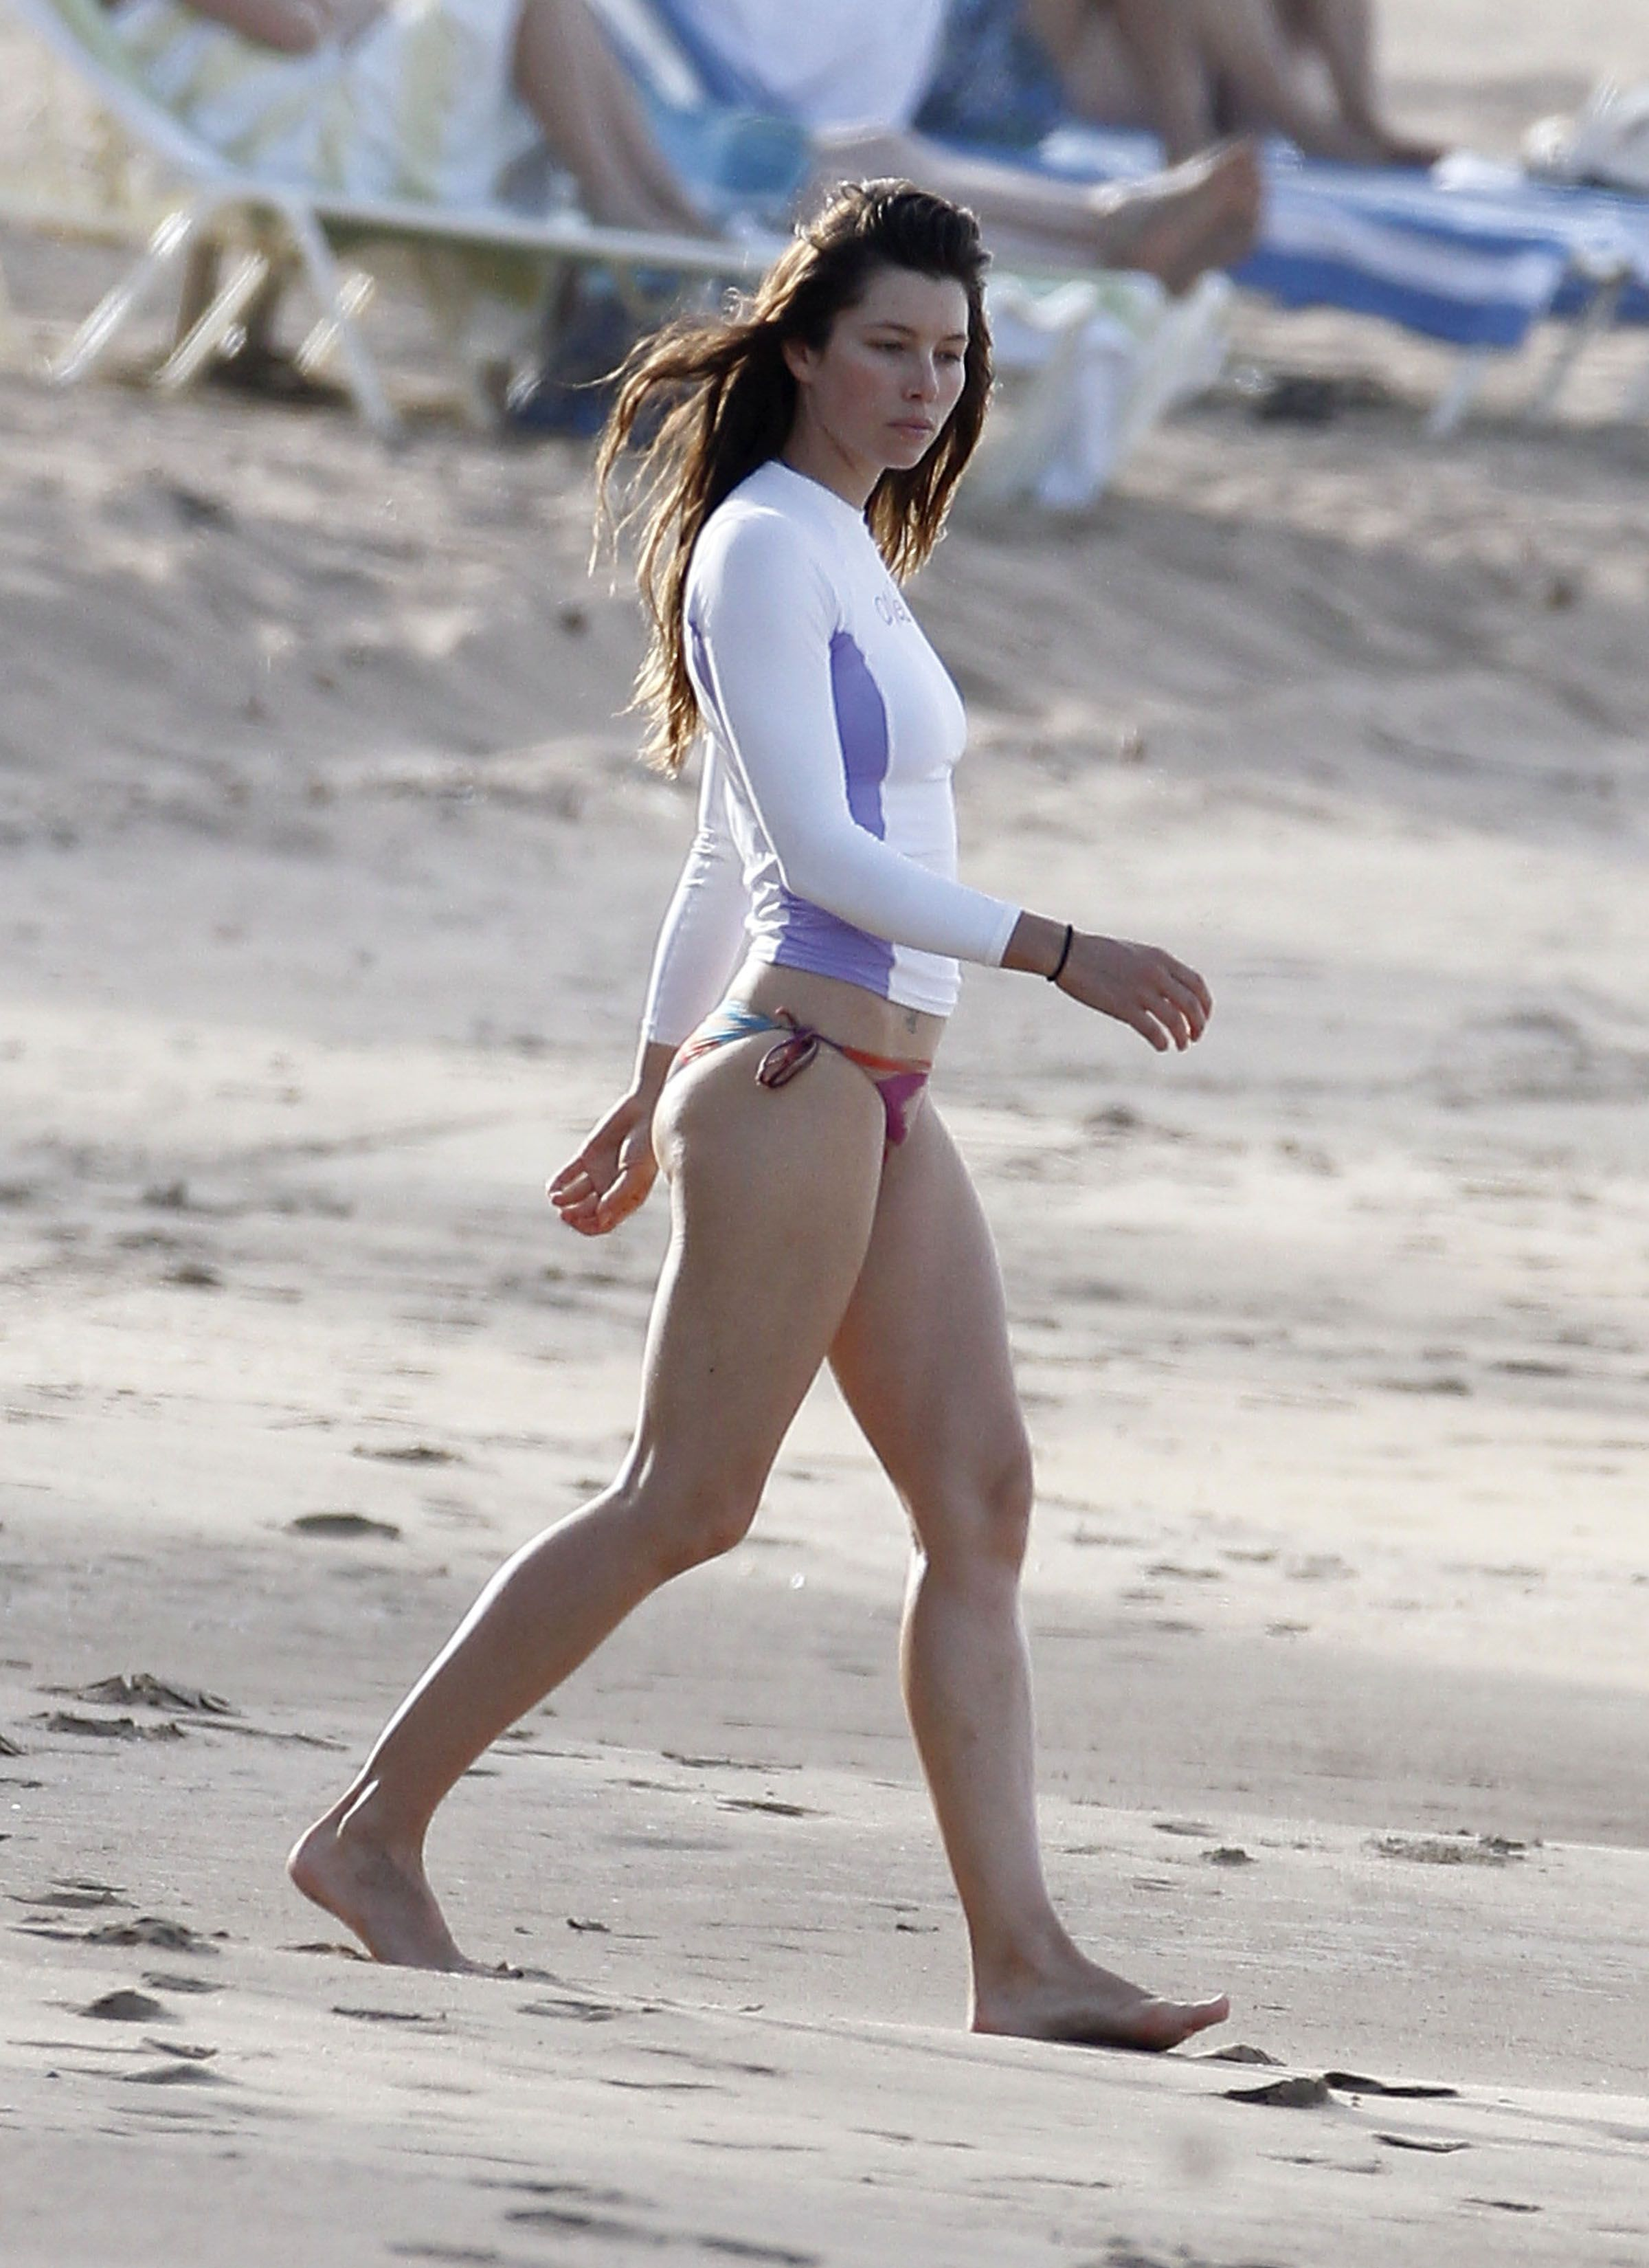 Bikini Jessica Biel nudes (36 photo), Ass, Bikini, Boobs, bra 2018